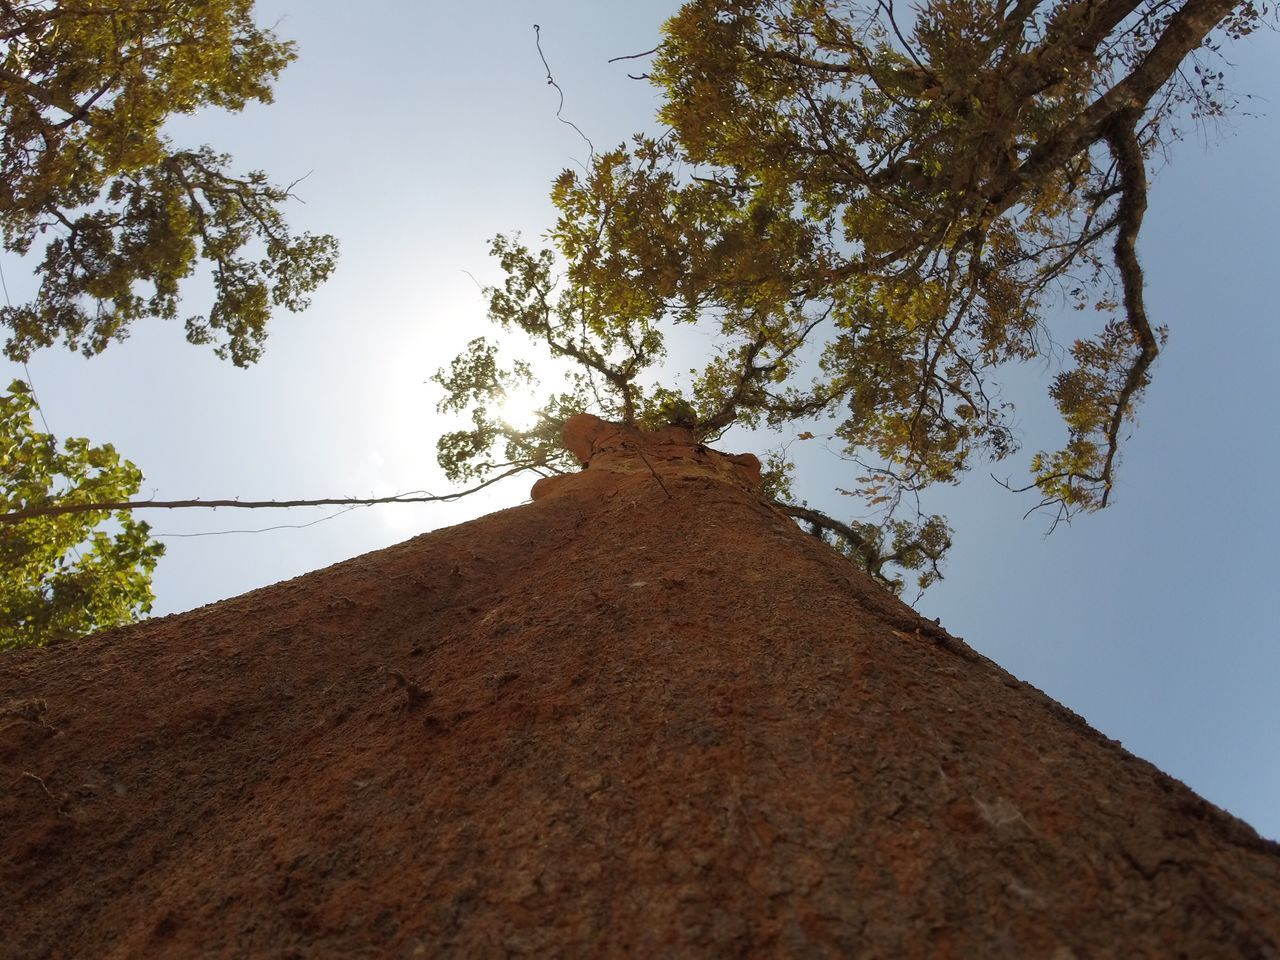 tree, low angle view, architecture, no people, day, built structure, outdoors, sky, growth, branch, clear sky, nature